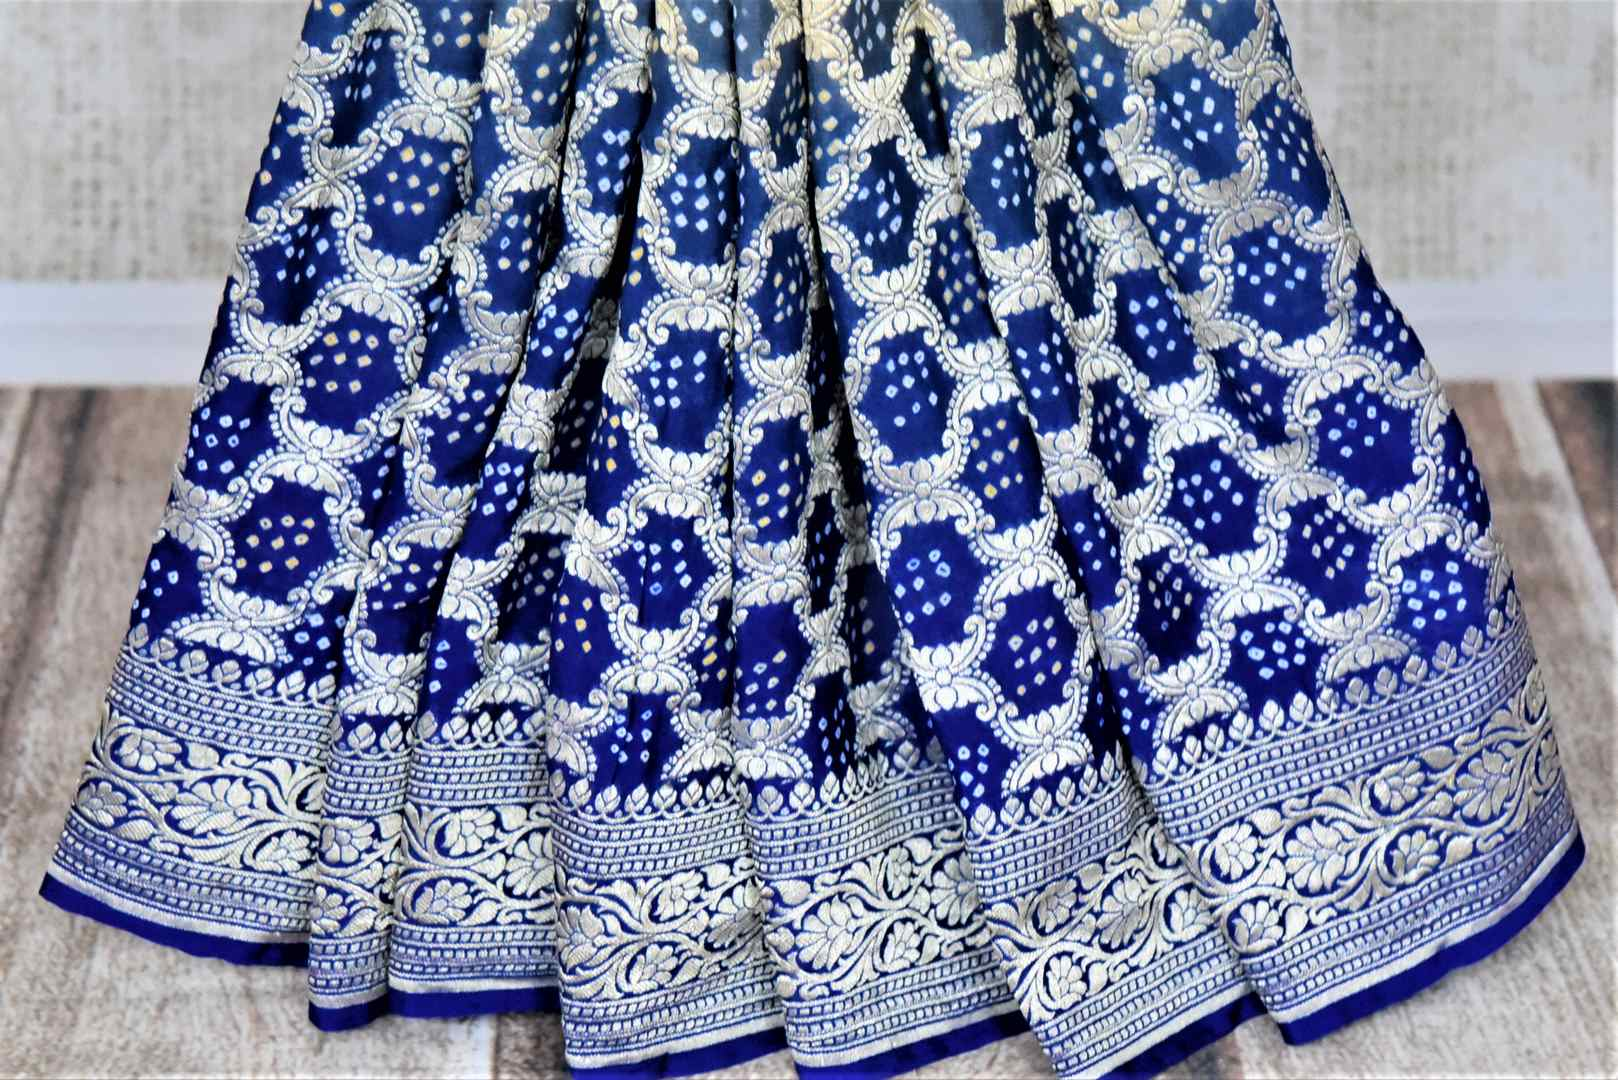 Buy stunning ombre blue bandhej georgette Banarasi sari online in USA. Spread your ethnic charm on special occasions with traditional Banarasi sarees, bandhej sarees, georgette sarees from Pure Elegance Indian fashion store in USA.-pleats